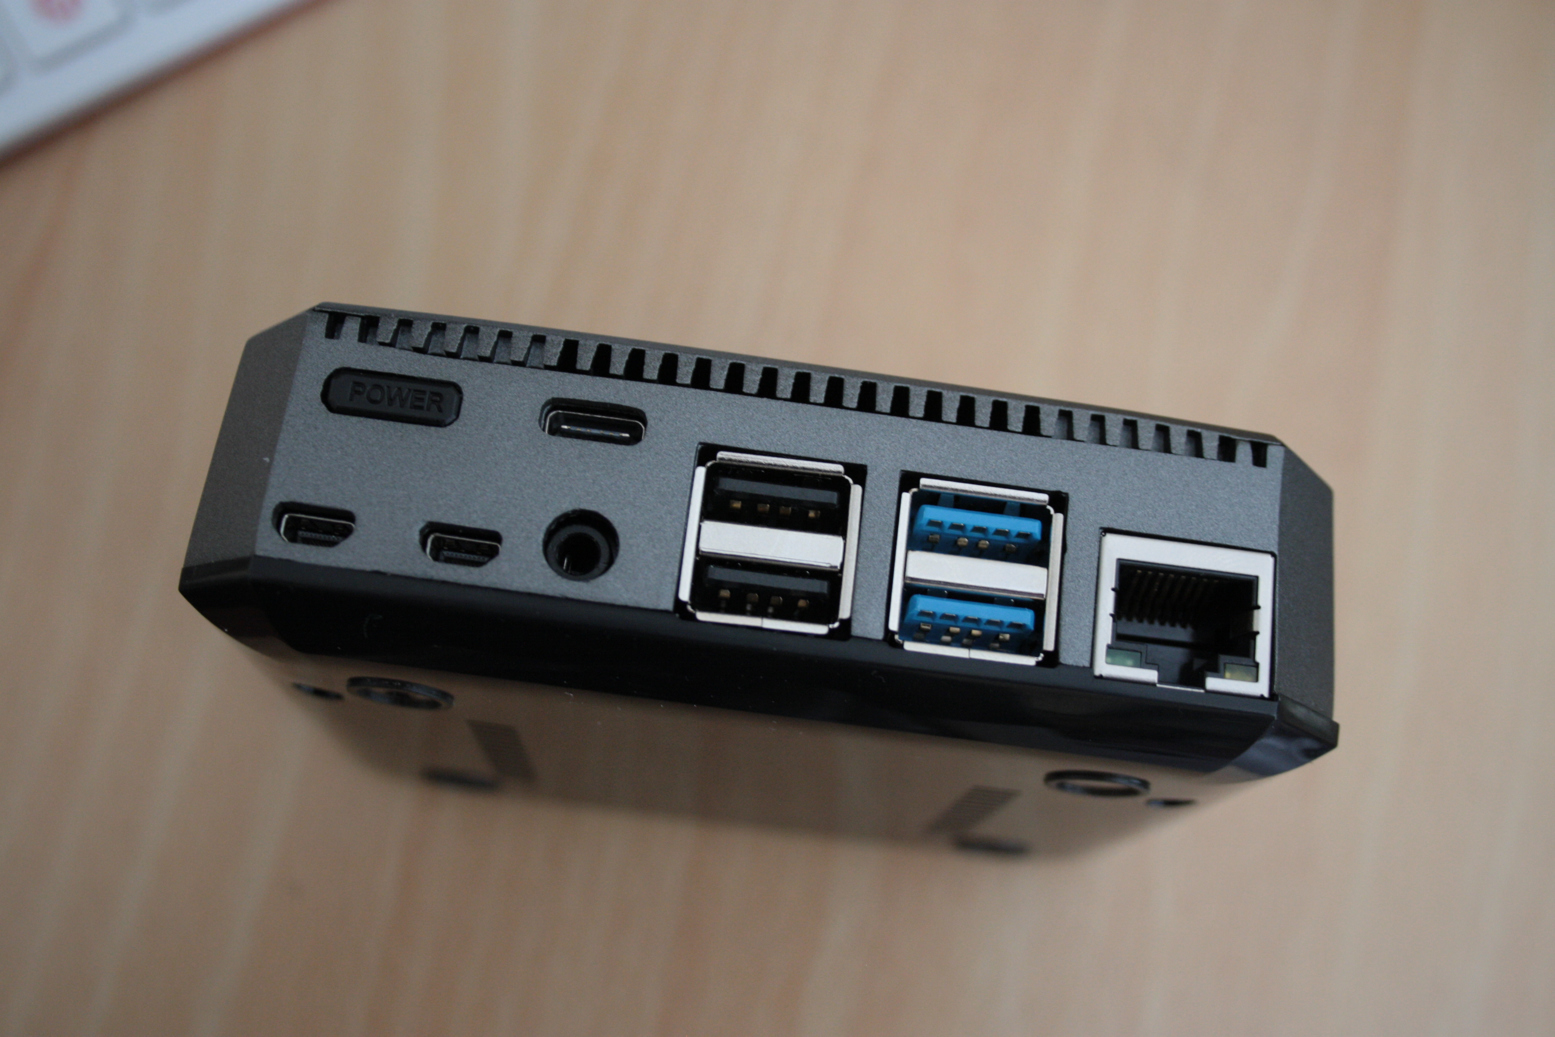 The rear of the case with all the ports on one side